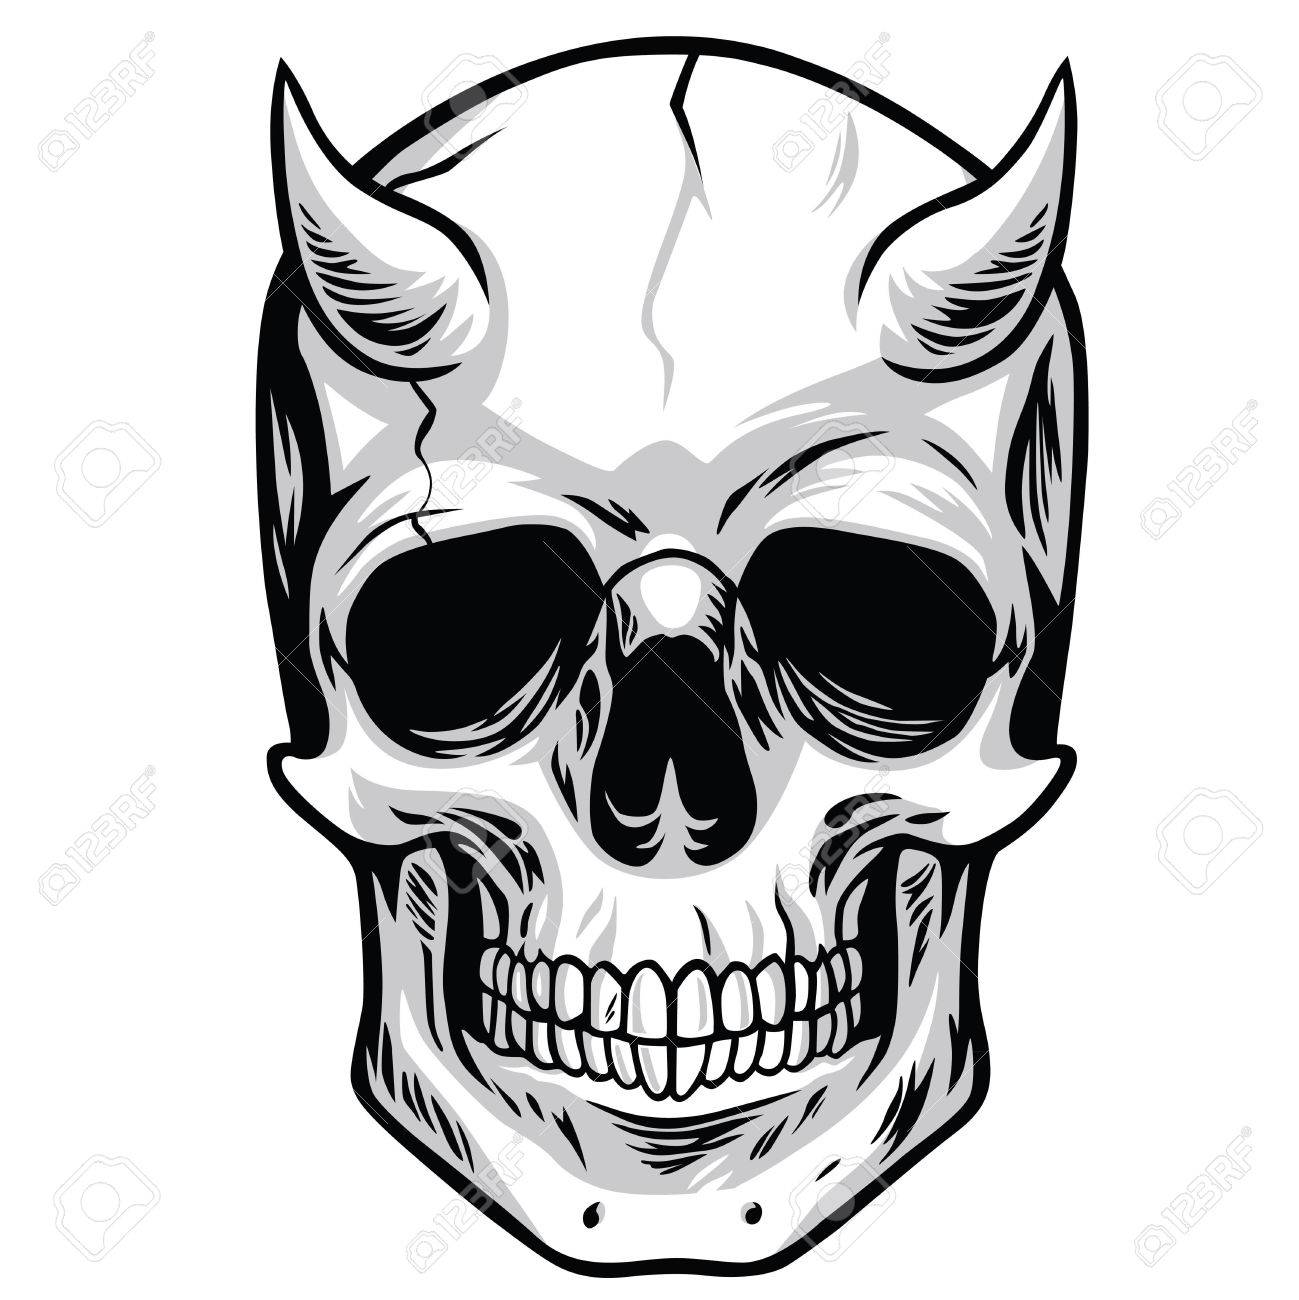 demon head skull vector royalty free cliparts vectors and stock rh 123rf com skull artwork vector skull artwork vector